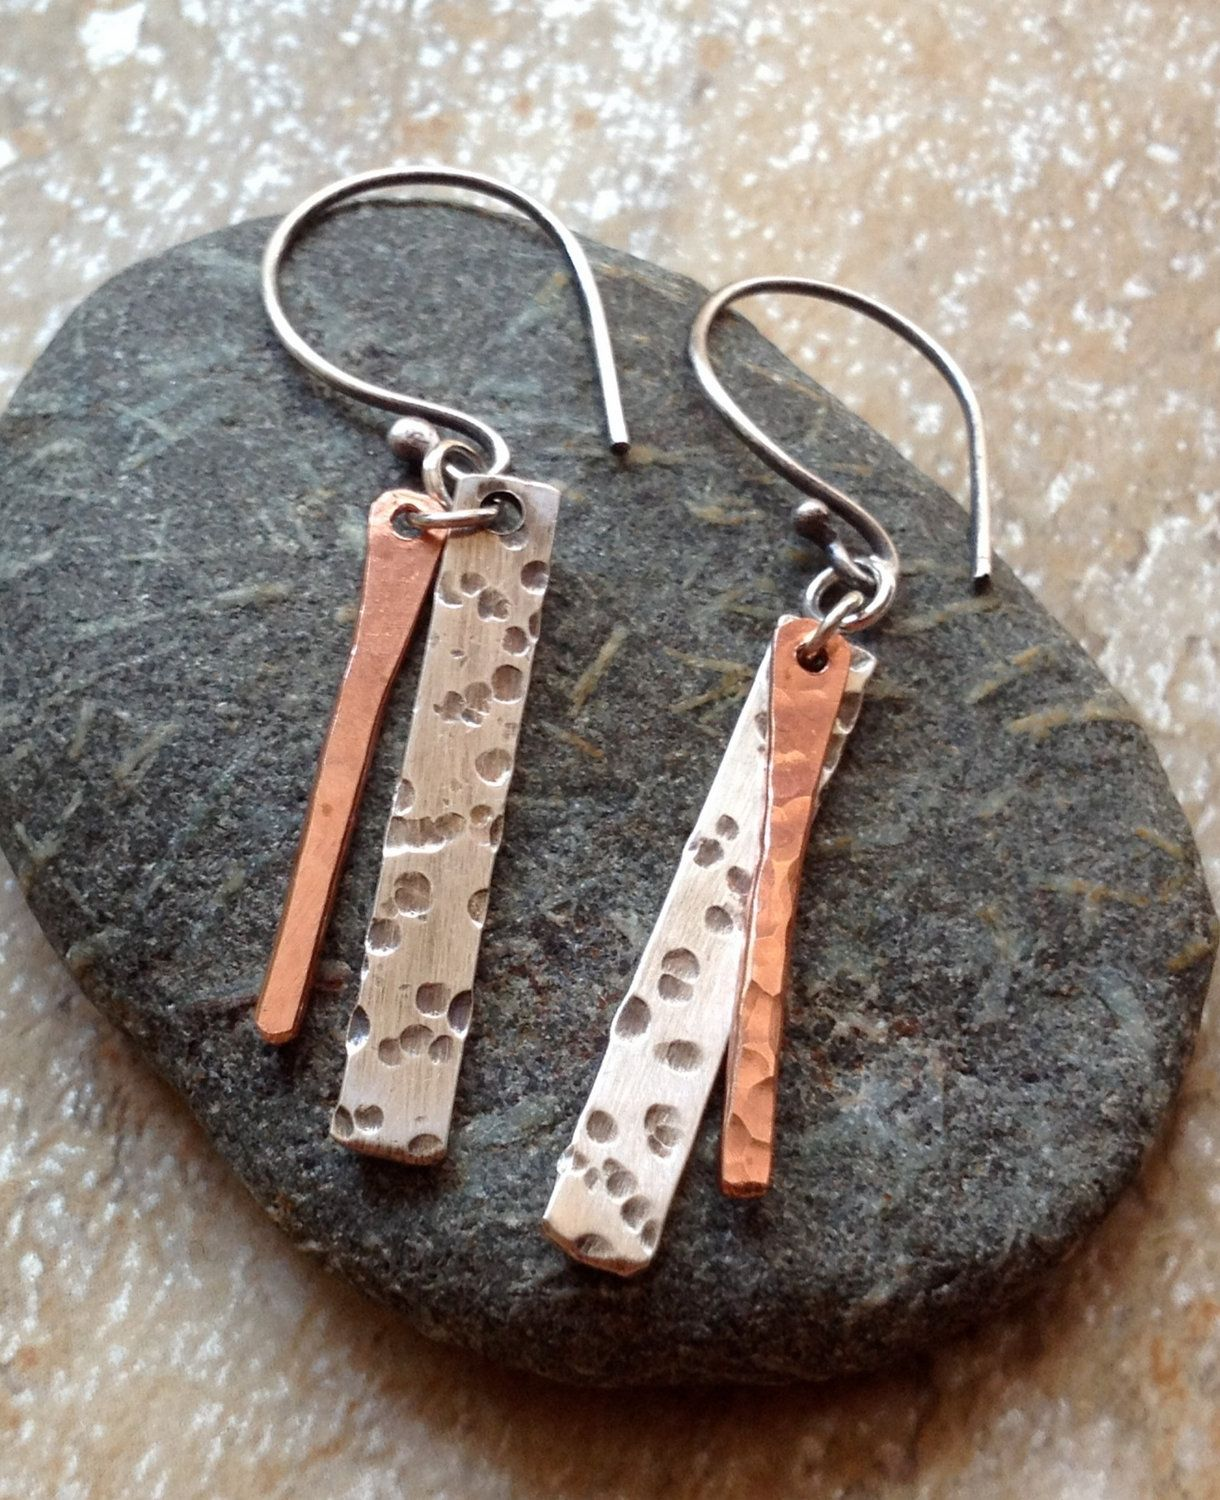 Hand Forged Mixed Metal Earrings Silver And Copper Dangles Rustic Handcrafted Jewelry